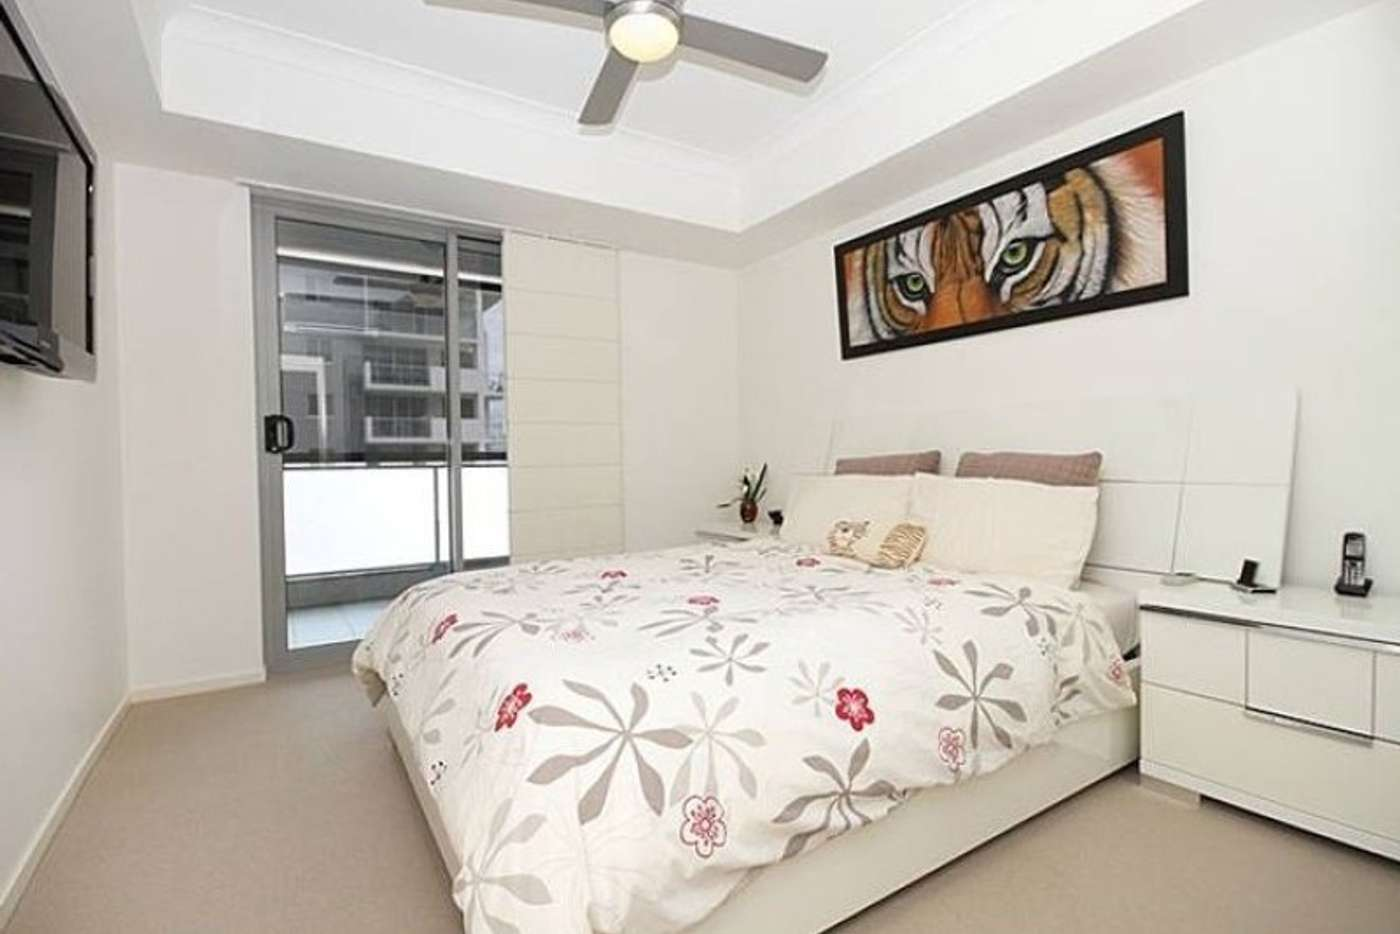 Seventh view of Homely unit listing, 43/23 Playfield Street, Chermside QLD 4032